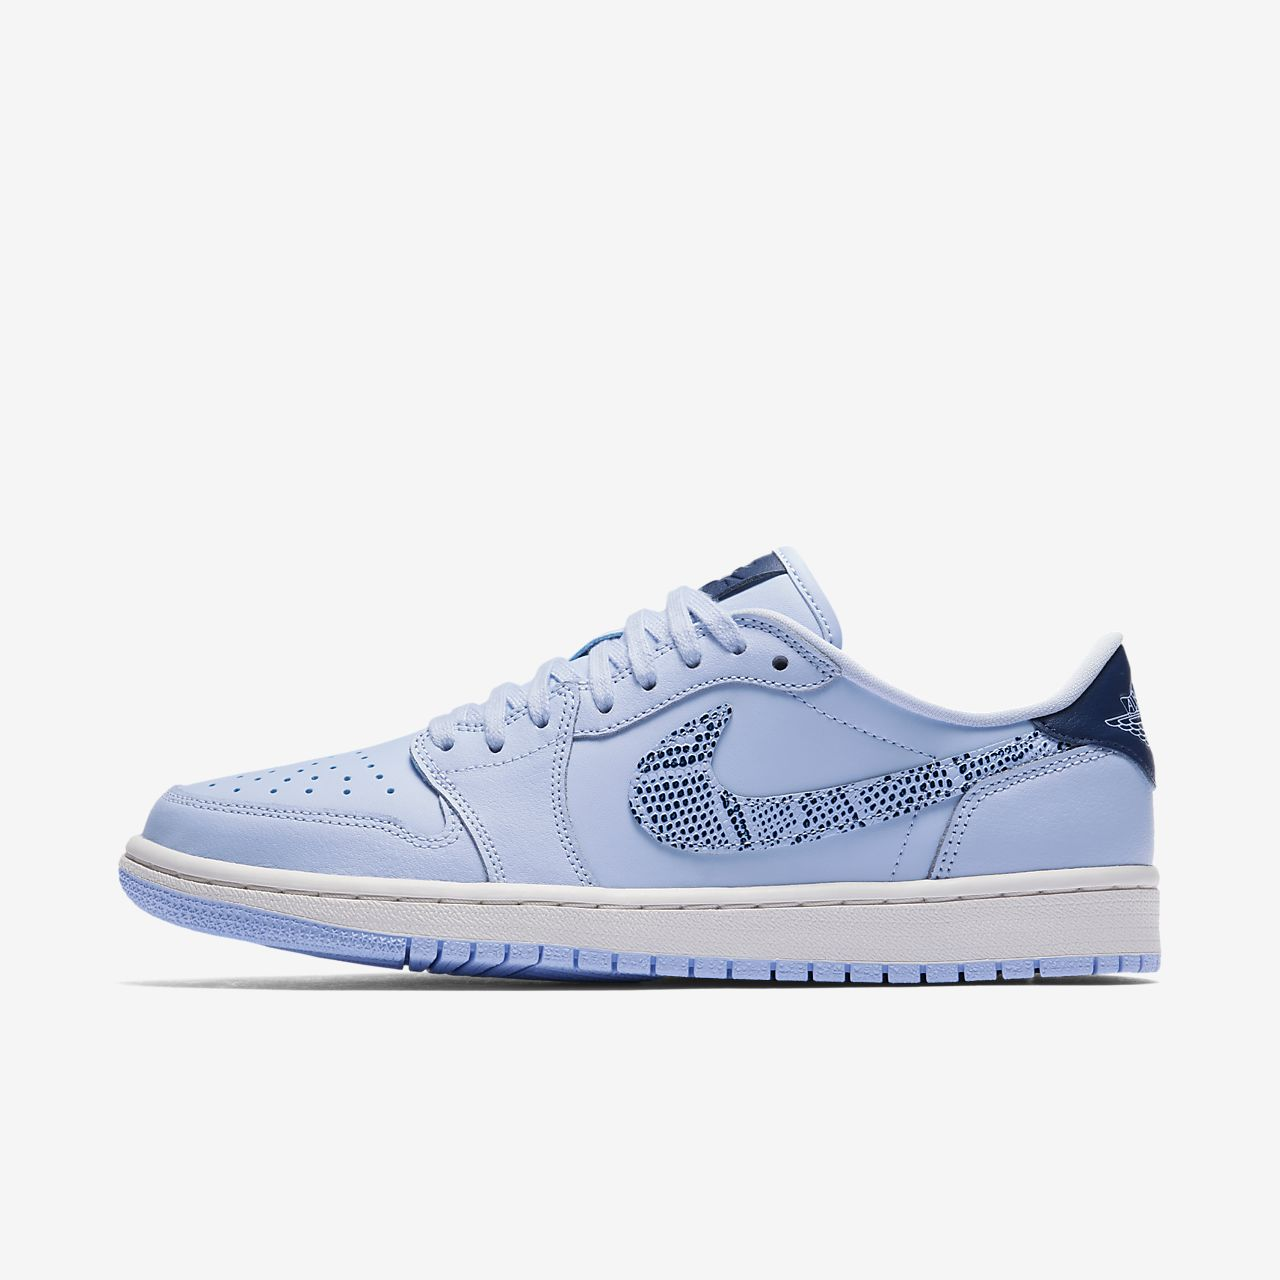 18664235ca9777 Air Jordan 1 Retro Low OG Women s Shoe. Nike.com CA